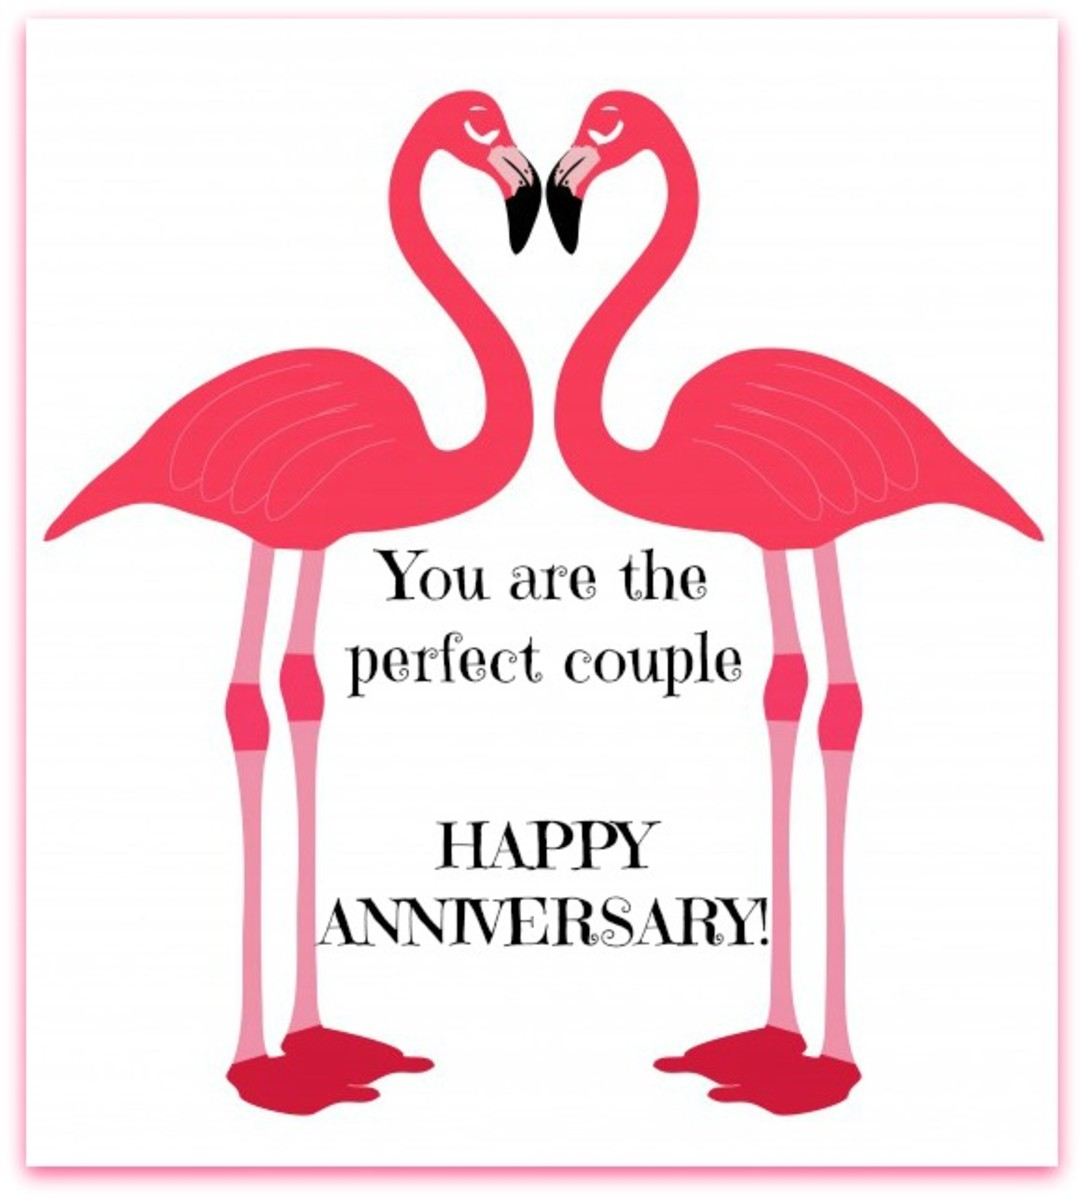 Marriage Anniversary Quotes For Couple: Happy Anniversary Messages And Wishes